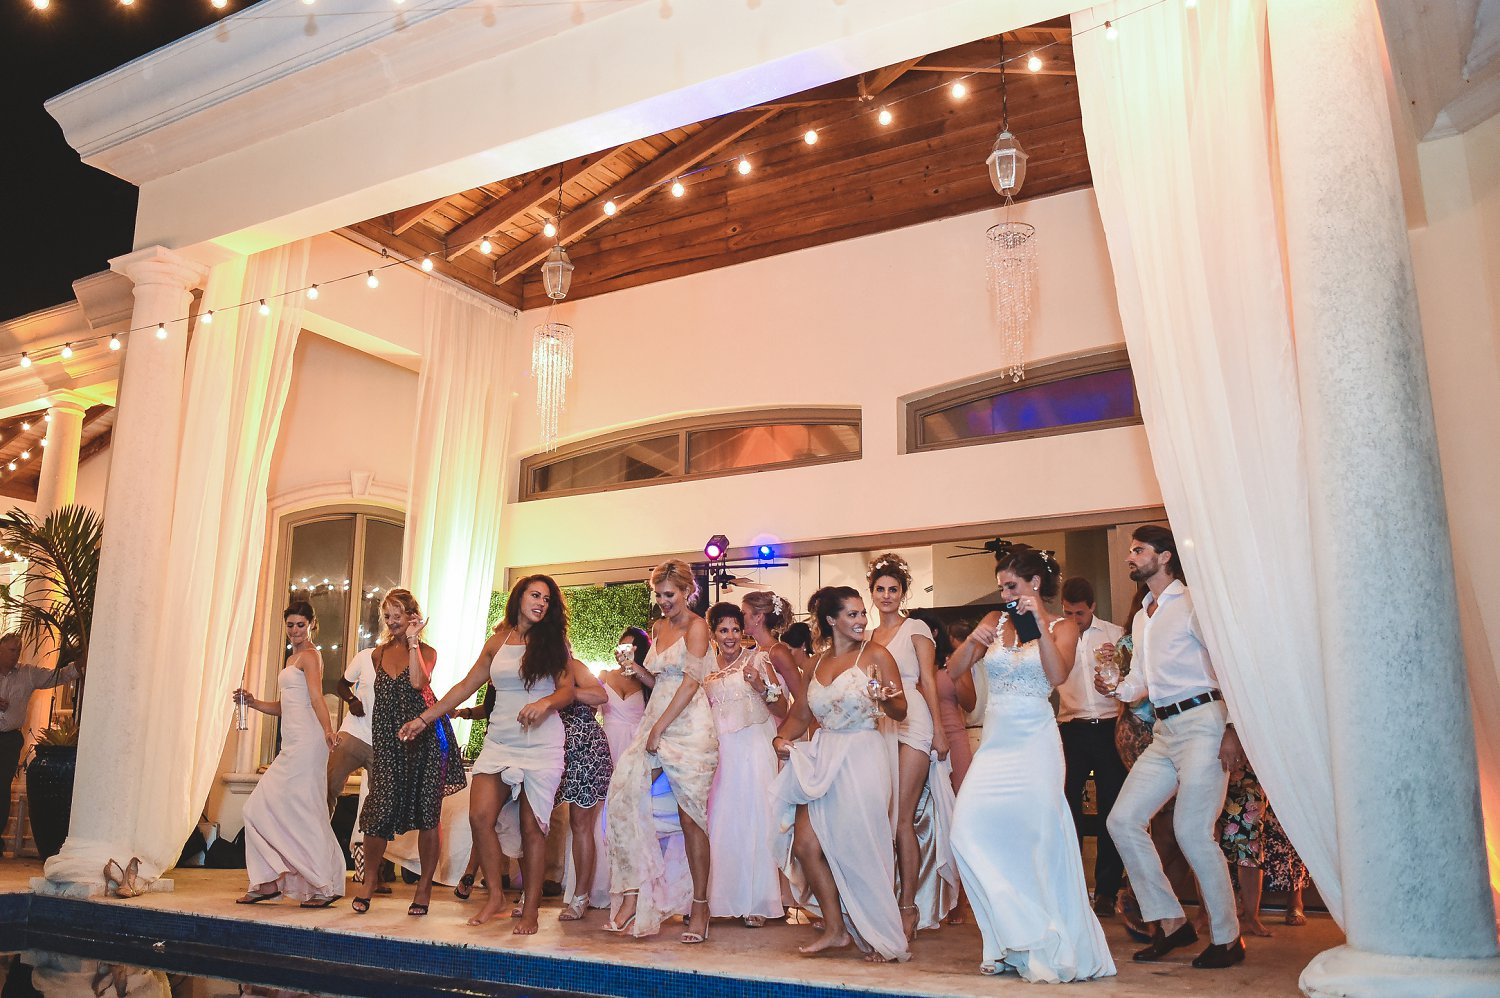 Everybody on the dance floor at Villa Serenita wedding in St. Thomas